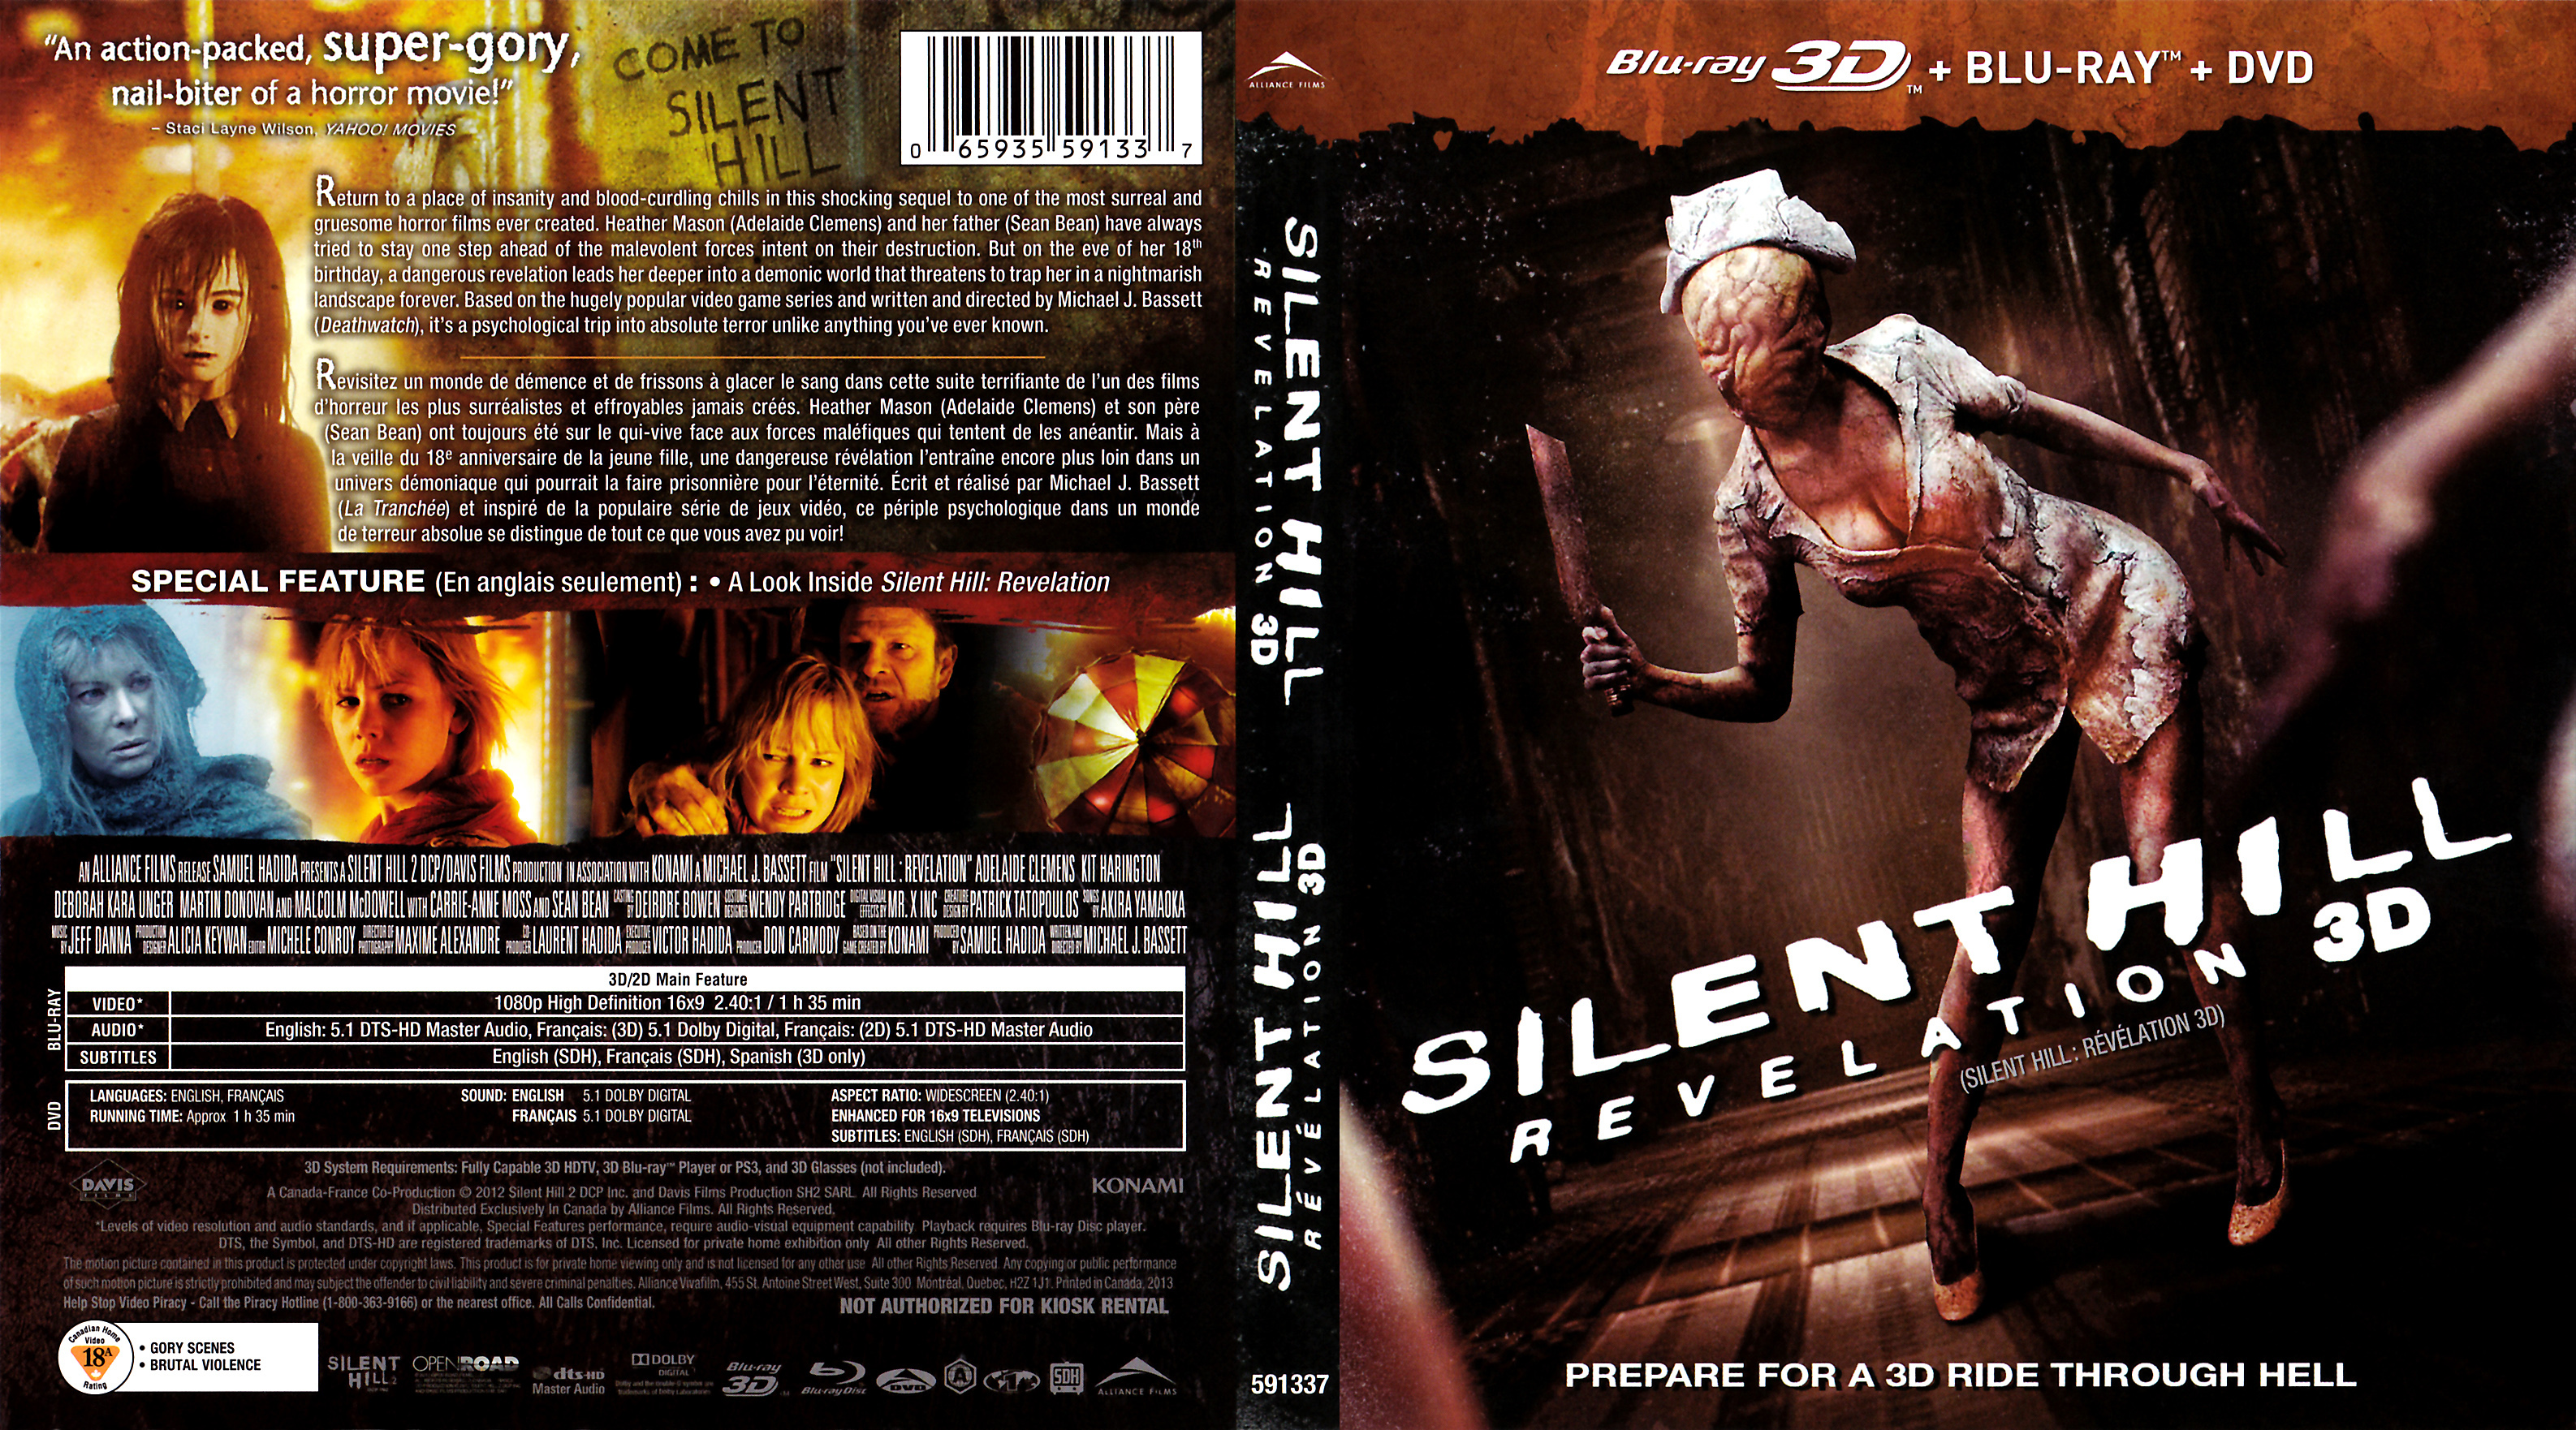 Silent Hill Revelation 3d Br Blu Ray Covers Cover Century Over 500 000 Album Art Covers For Free